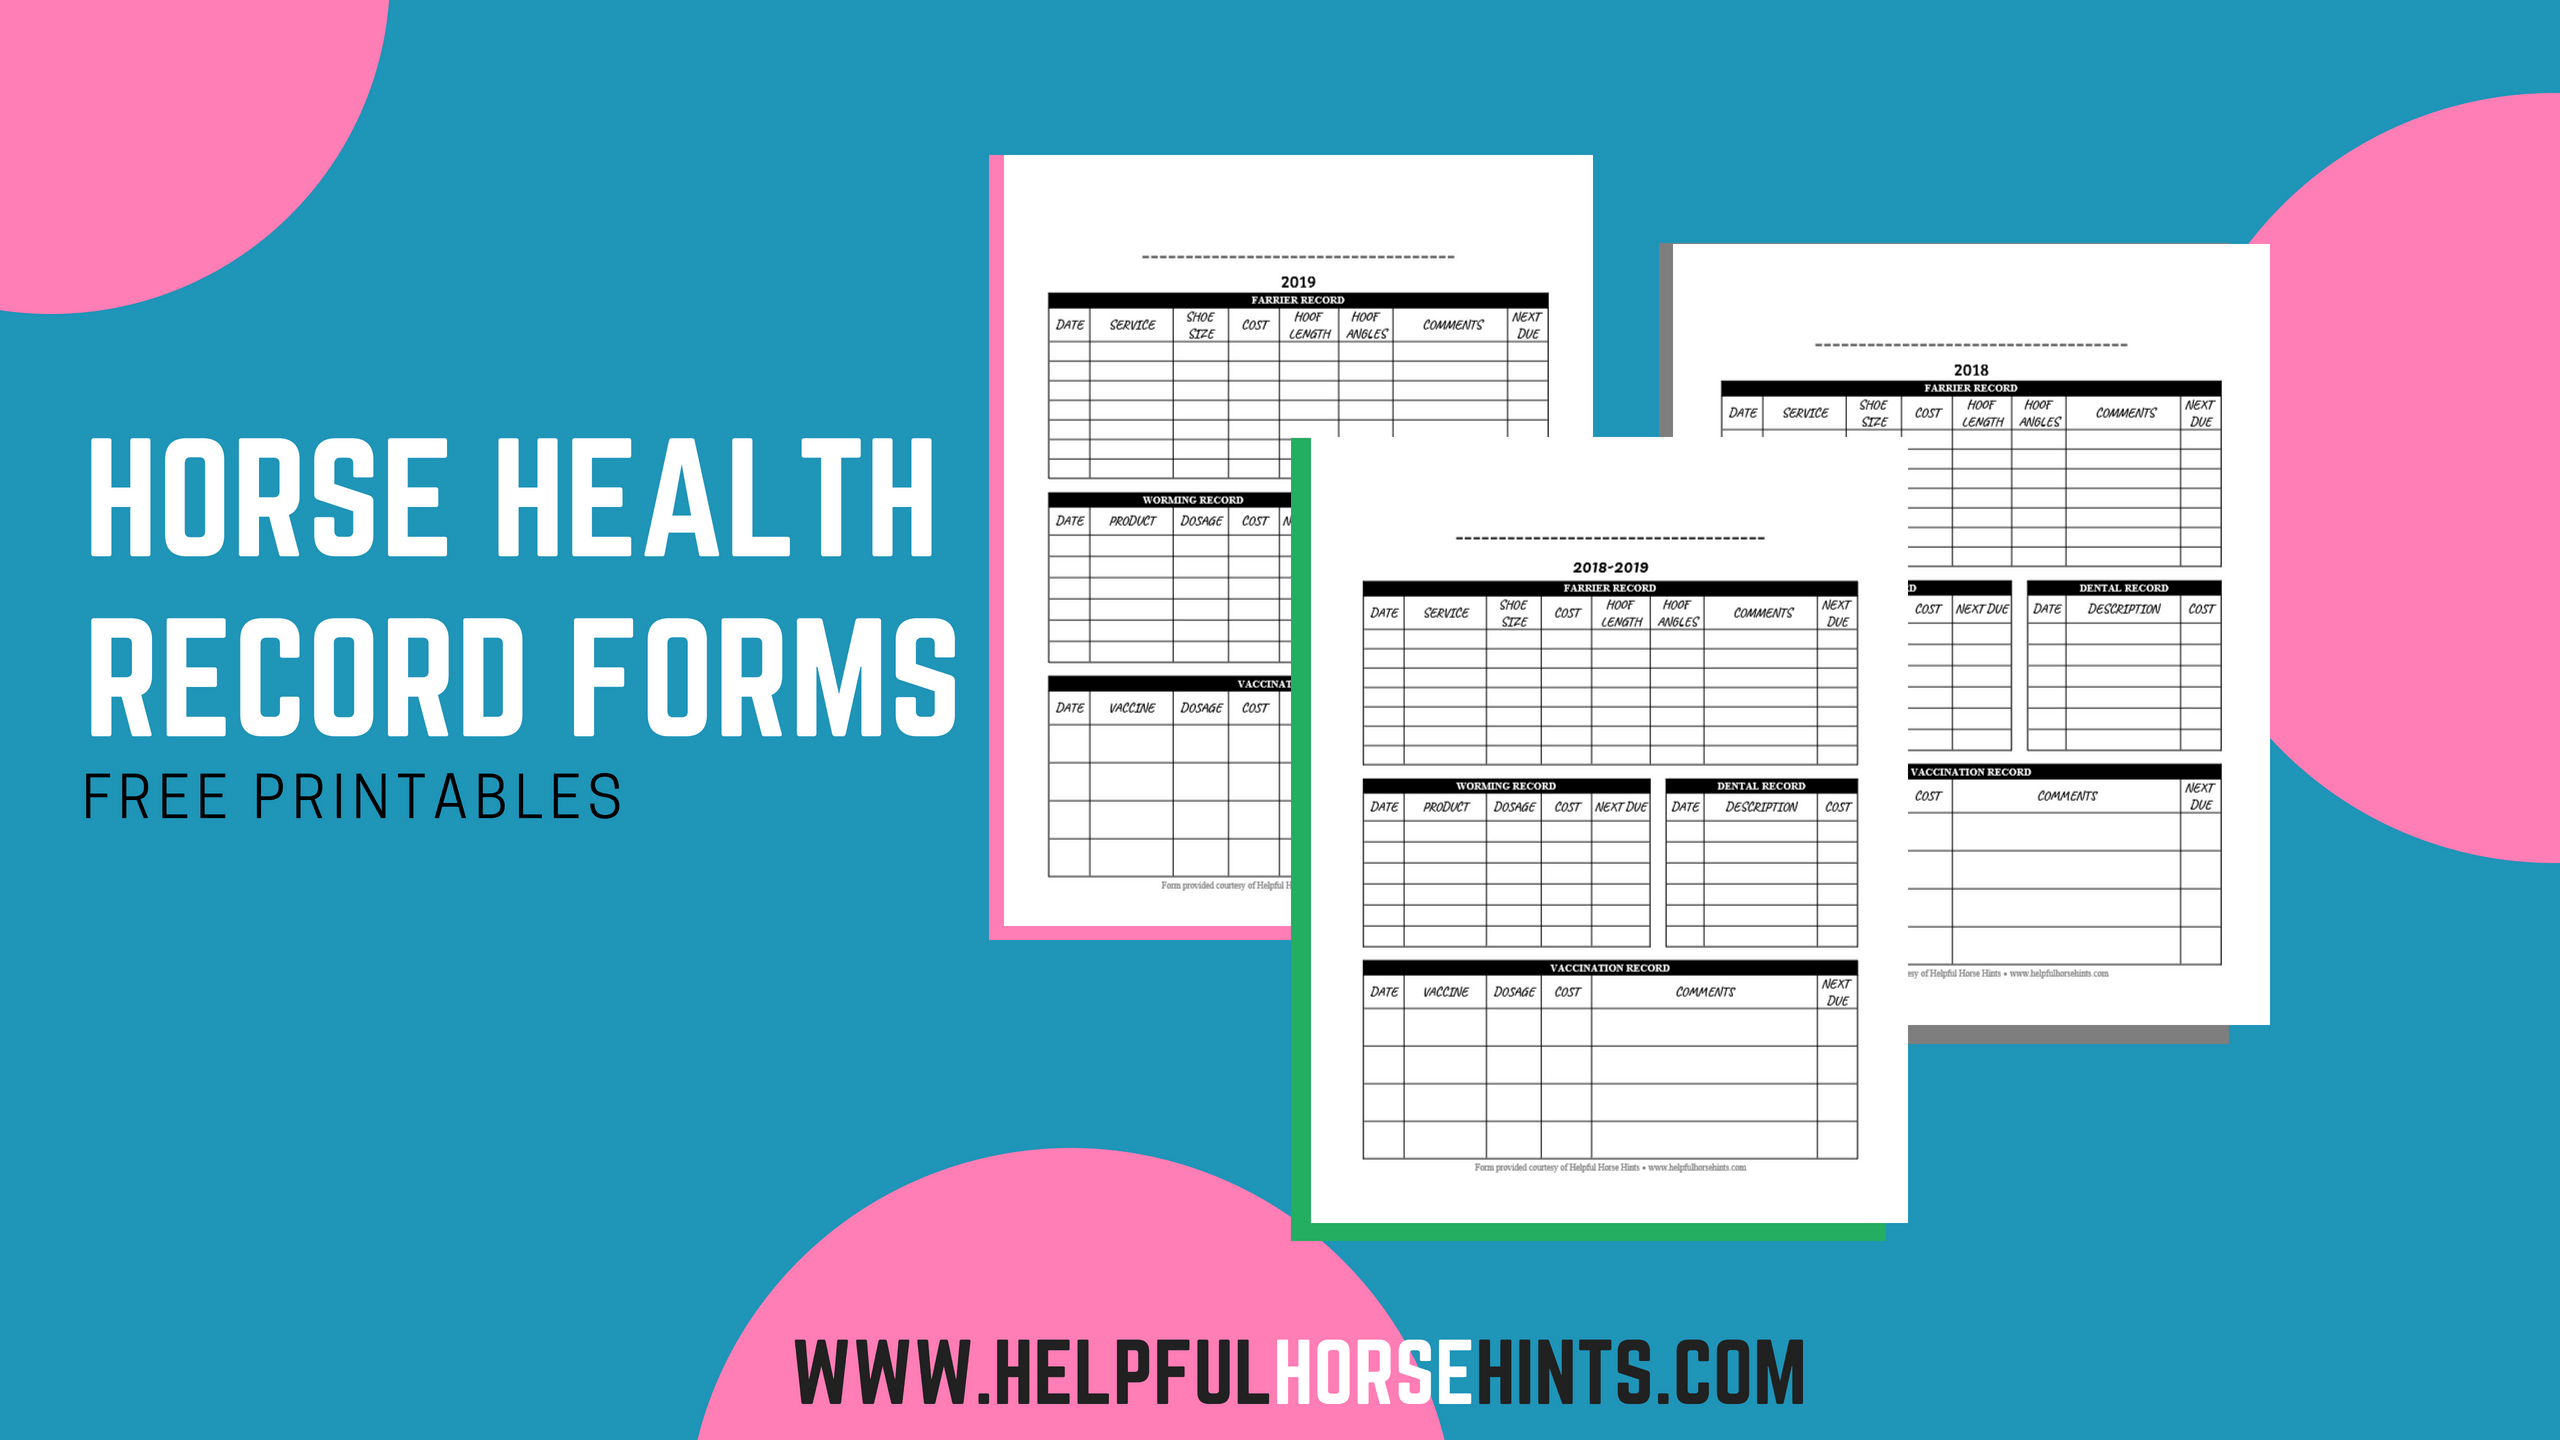 Horse Health Record Form